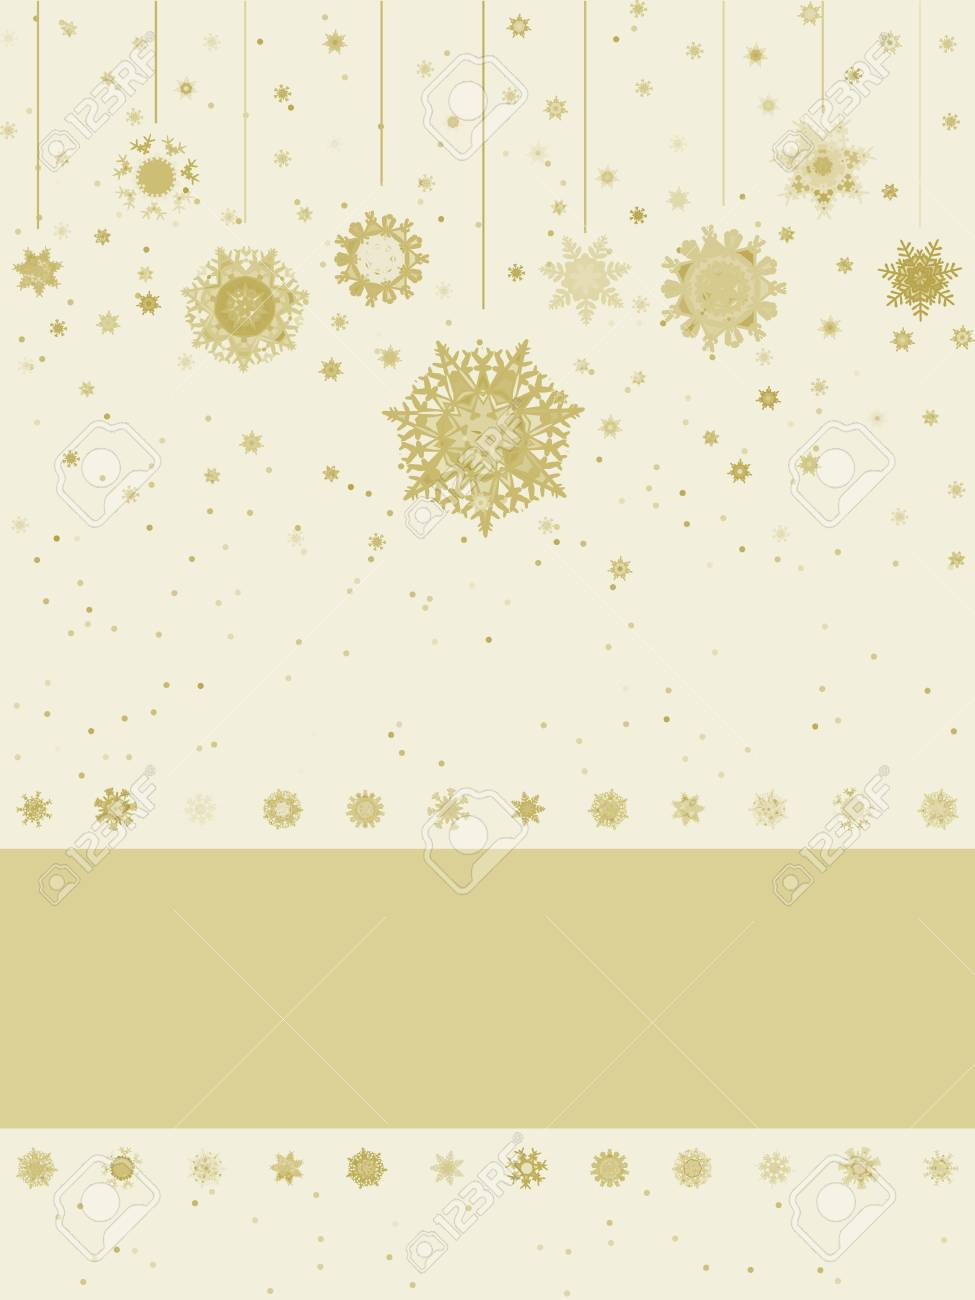 Christmas greeting card with snowflakes. Stock Vector - 11810531